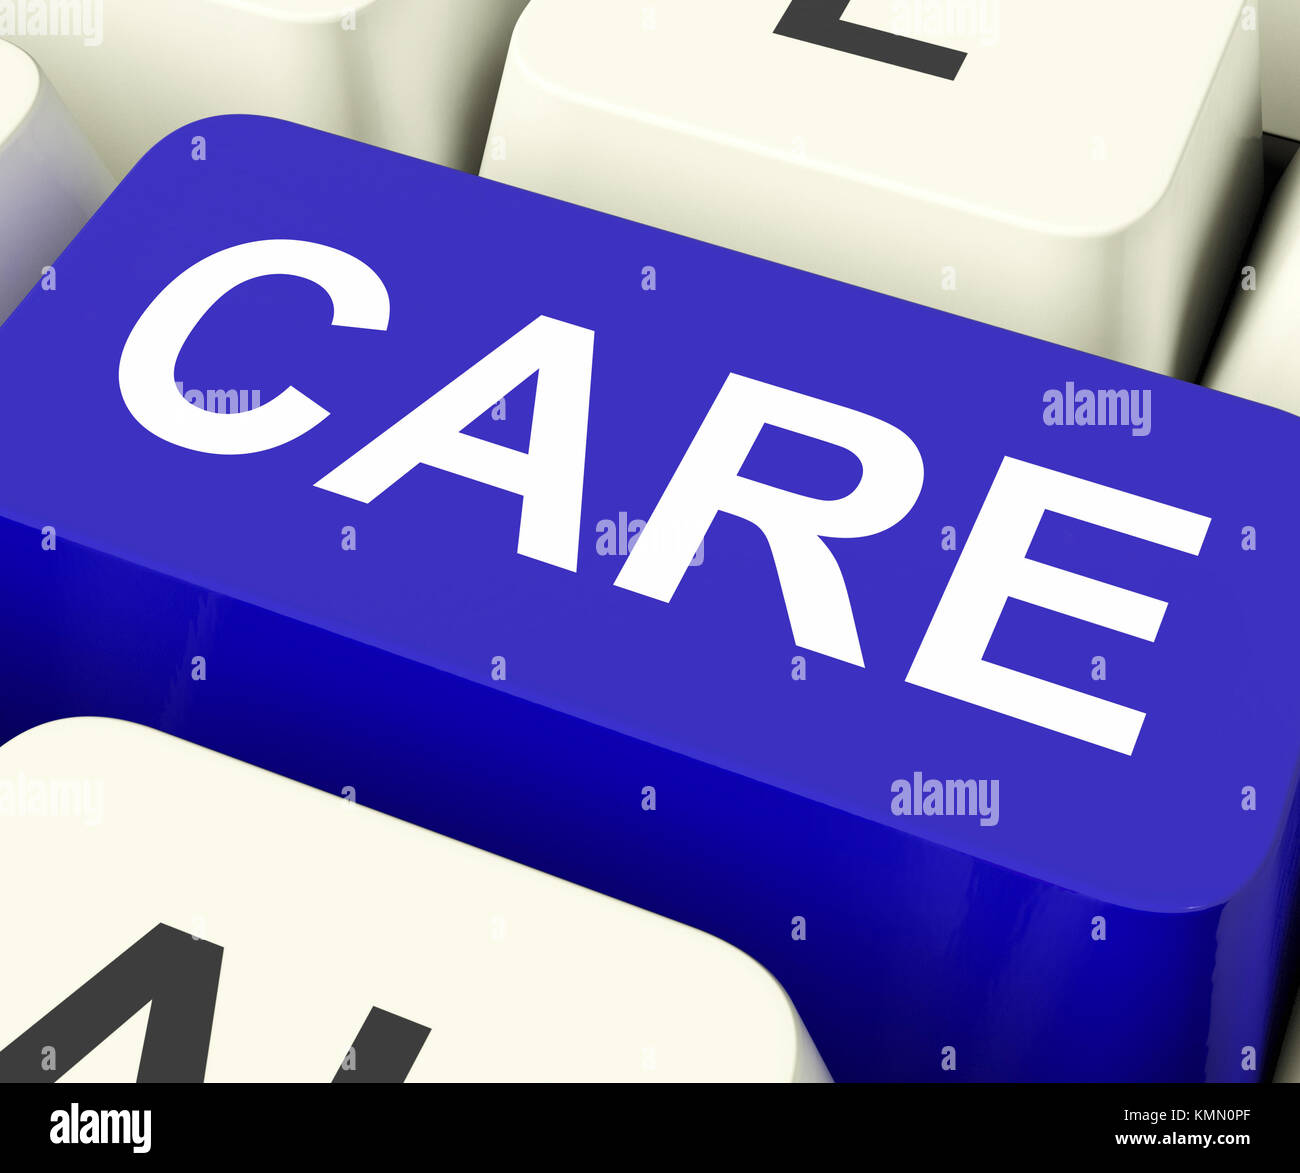 Care Keys Showing Concern Or Look After - Stock Image